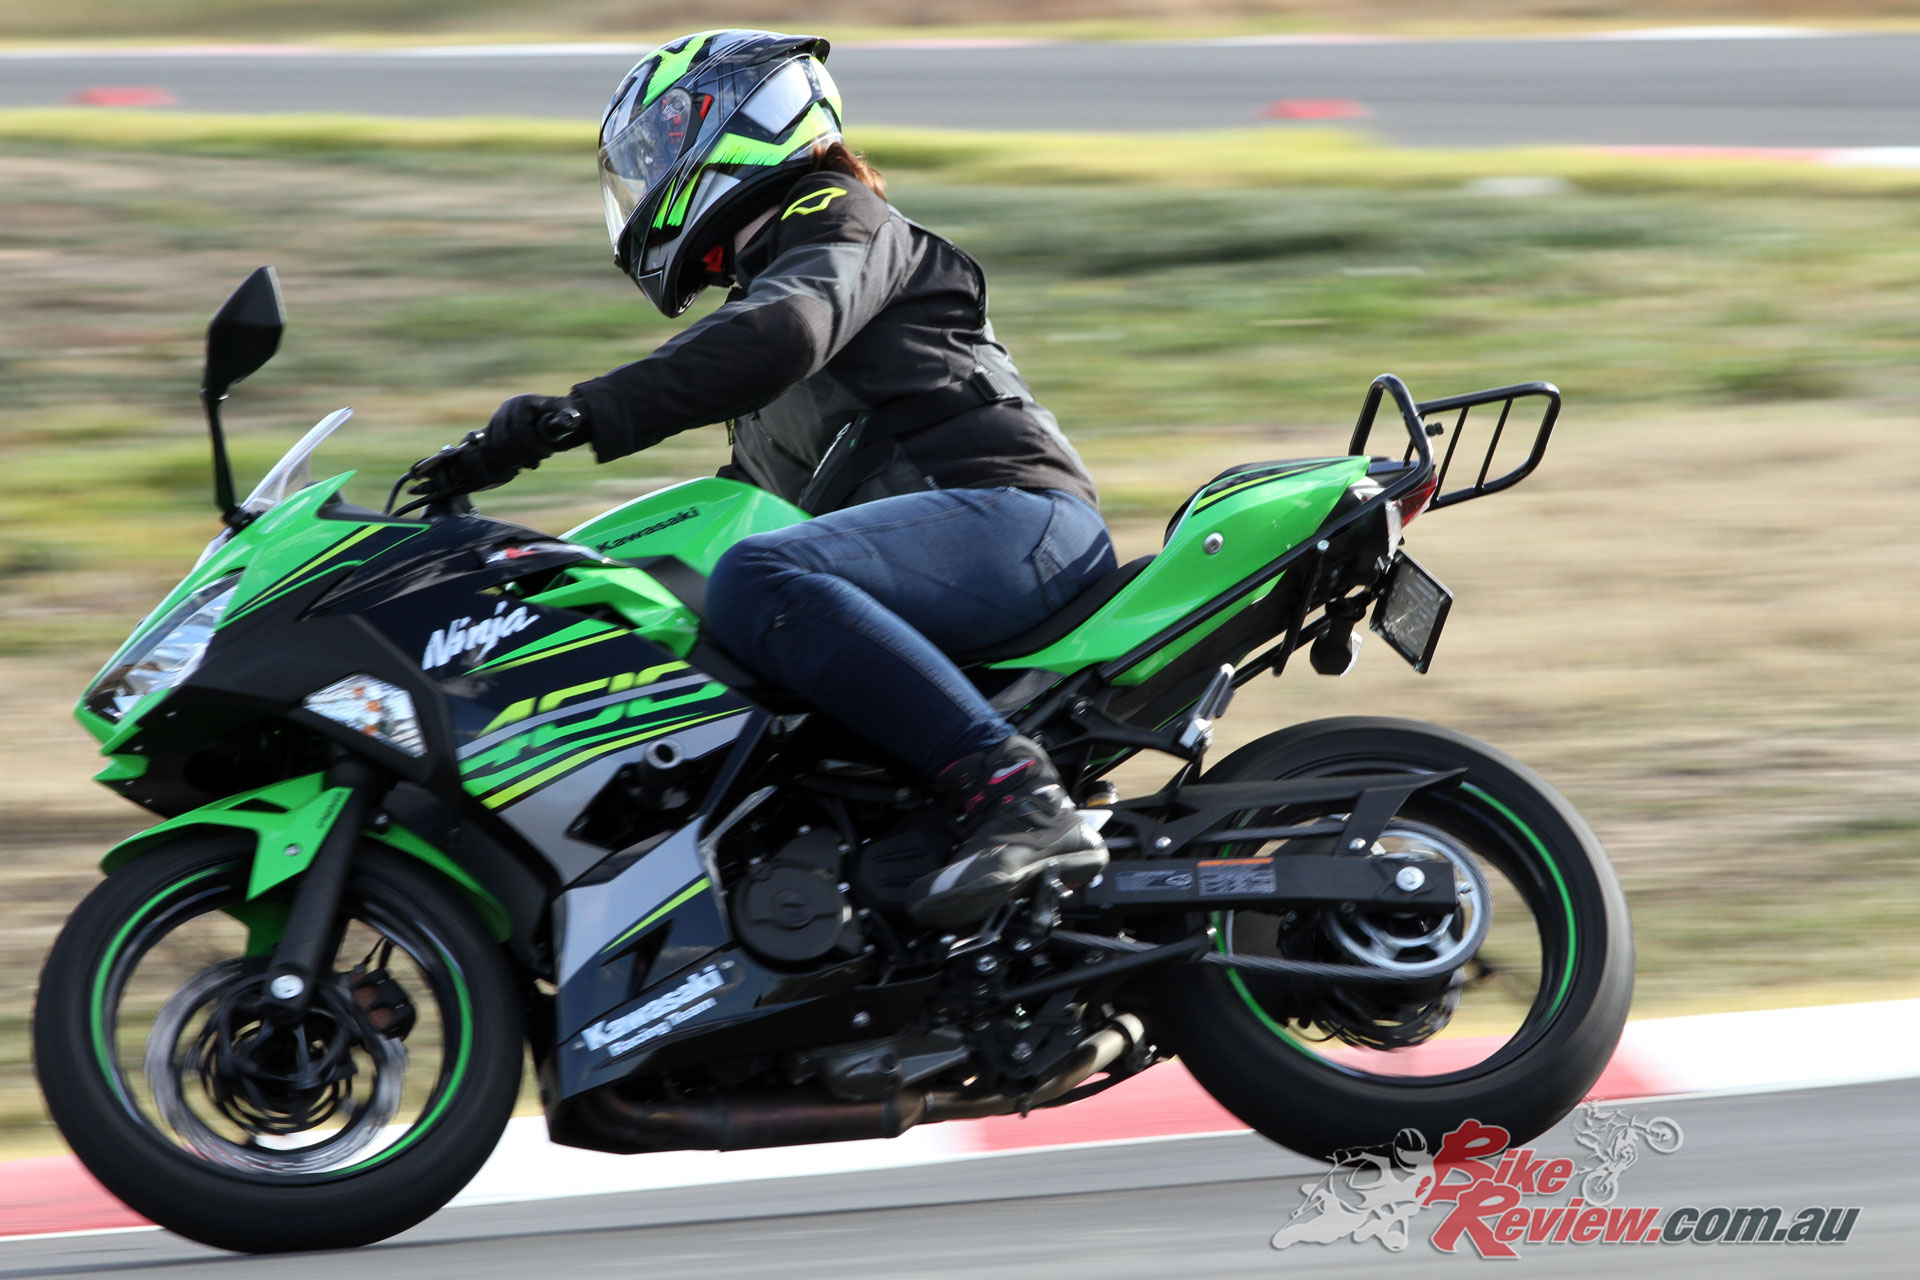 Samantha on our Long Term Ninja 400